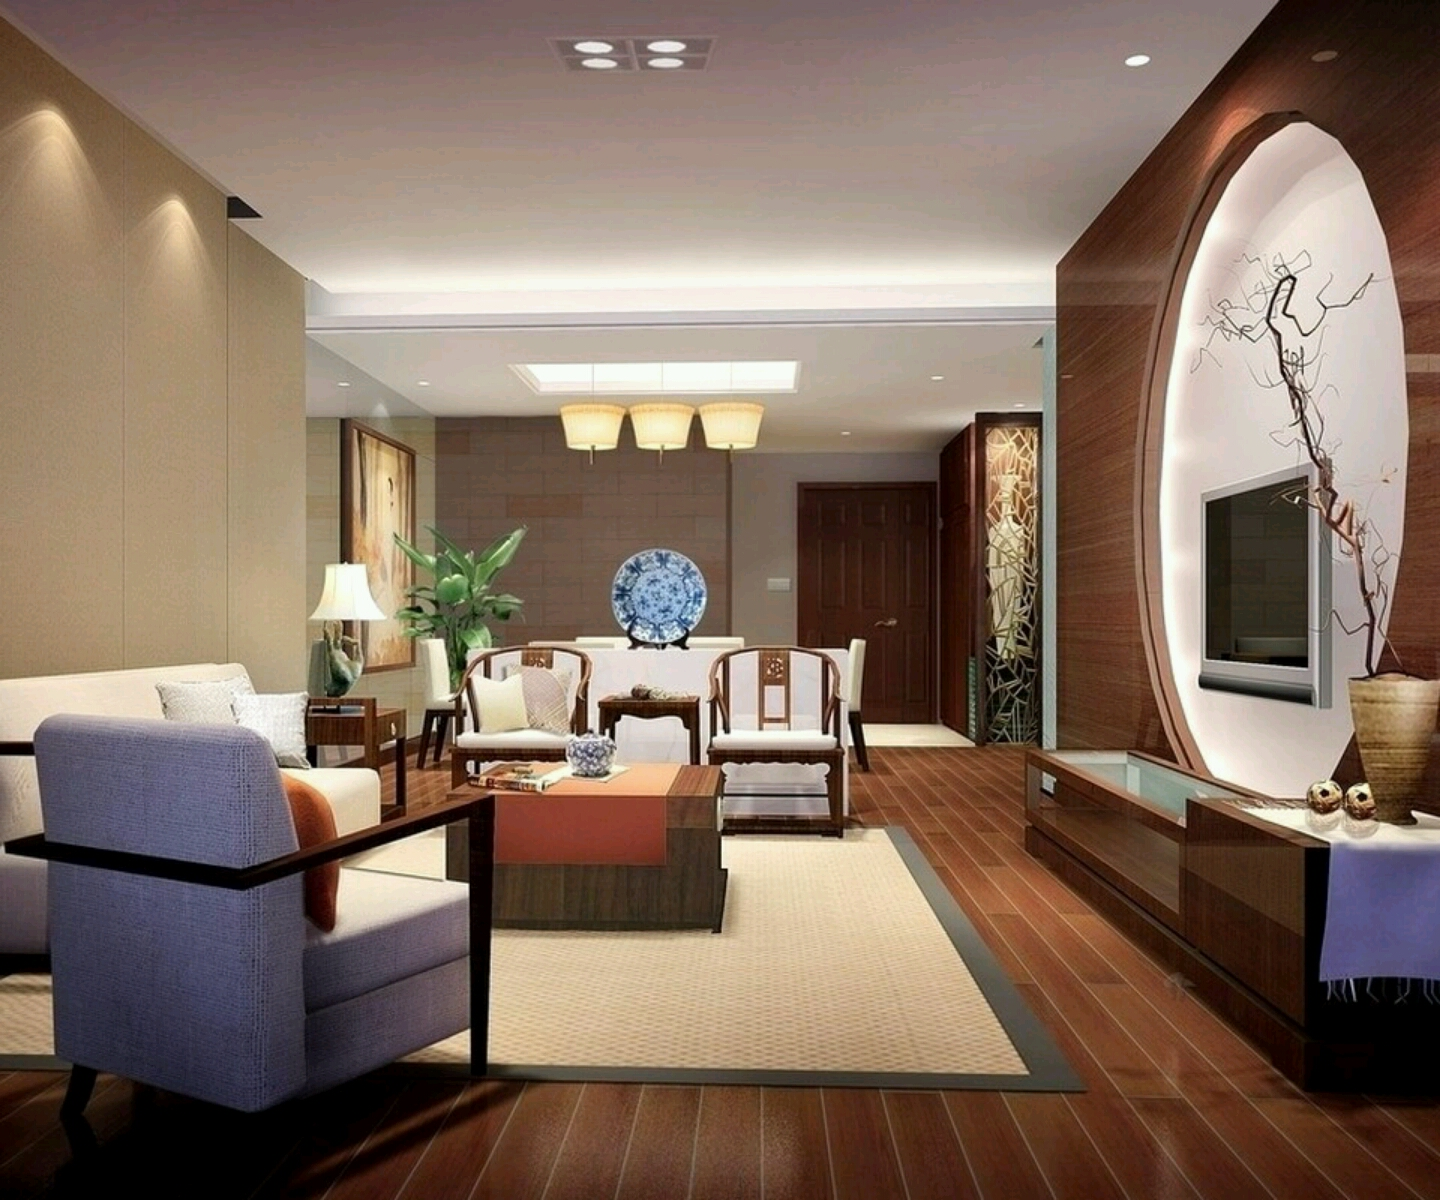 Luxury Living Room Interior Design Ideas: Luxury Homes Interior Decoration Living Room Designs Ideas